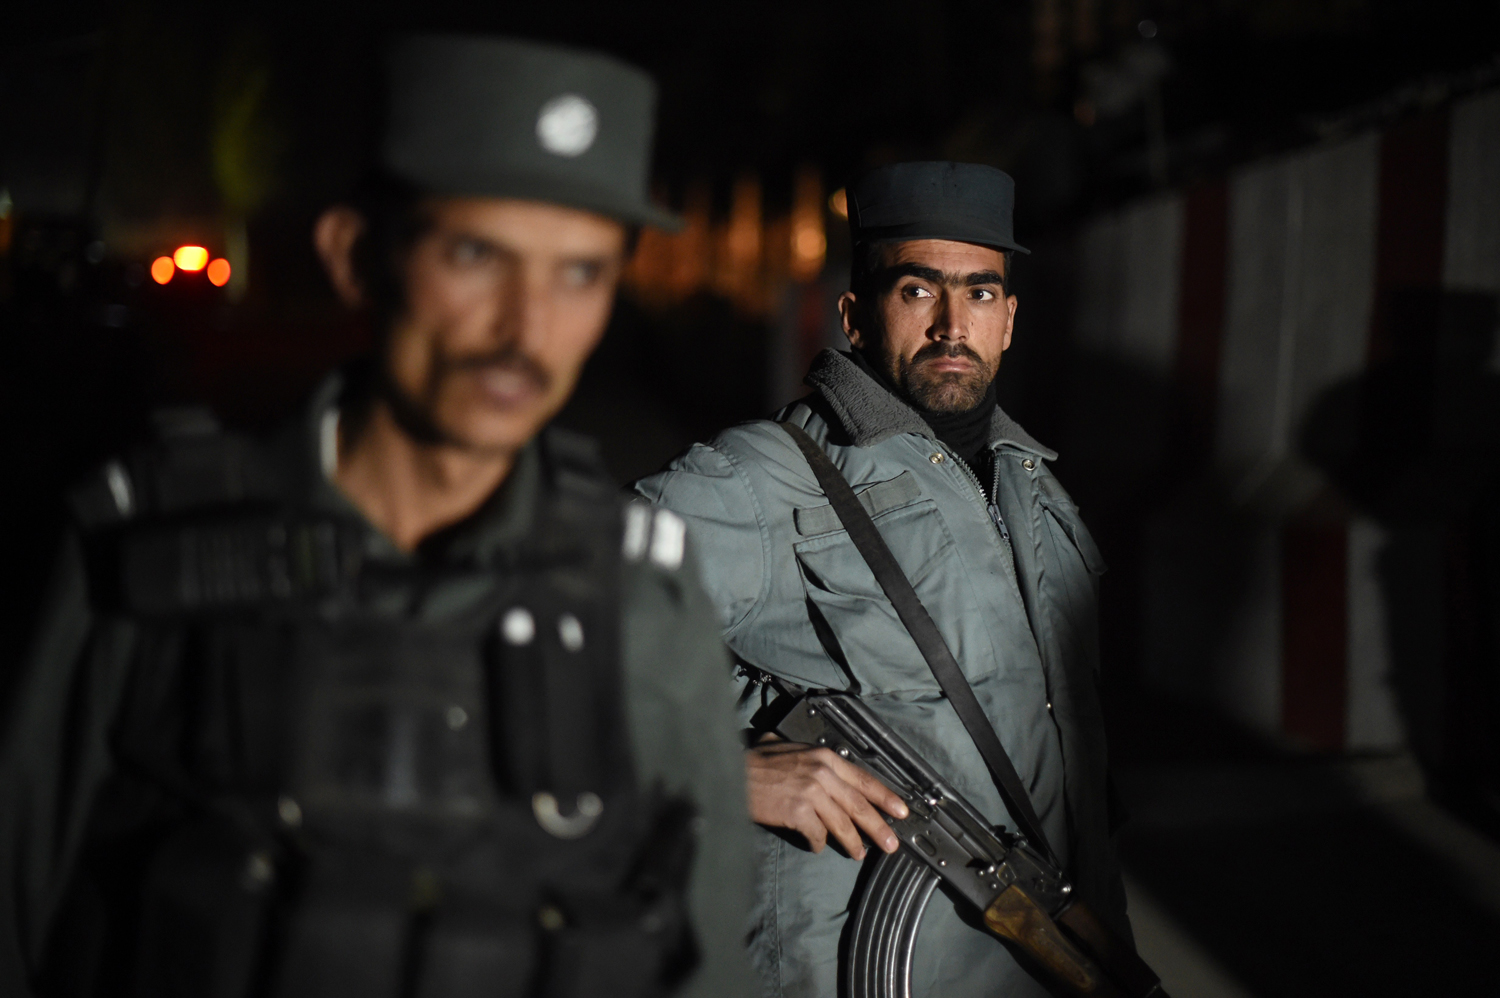 Afghan policemen stand guard at the site of a suicide attack at a foreign guesthouse in Kabul on November 27, 2014.